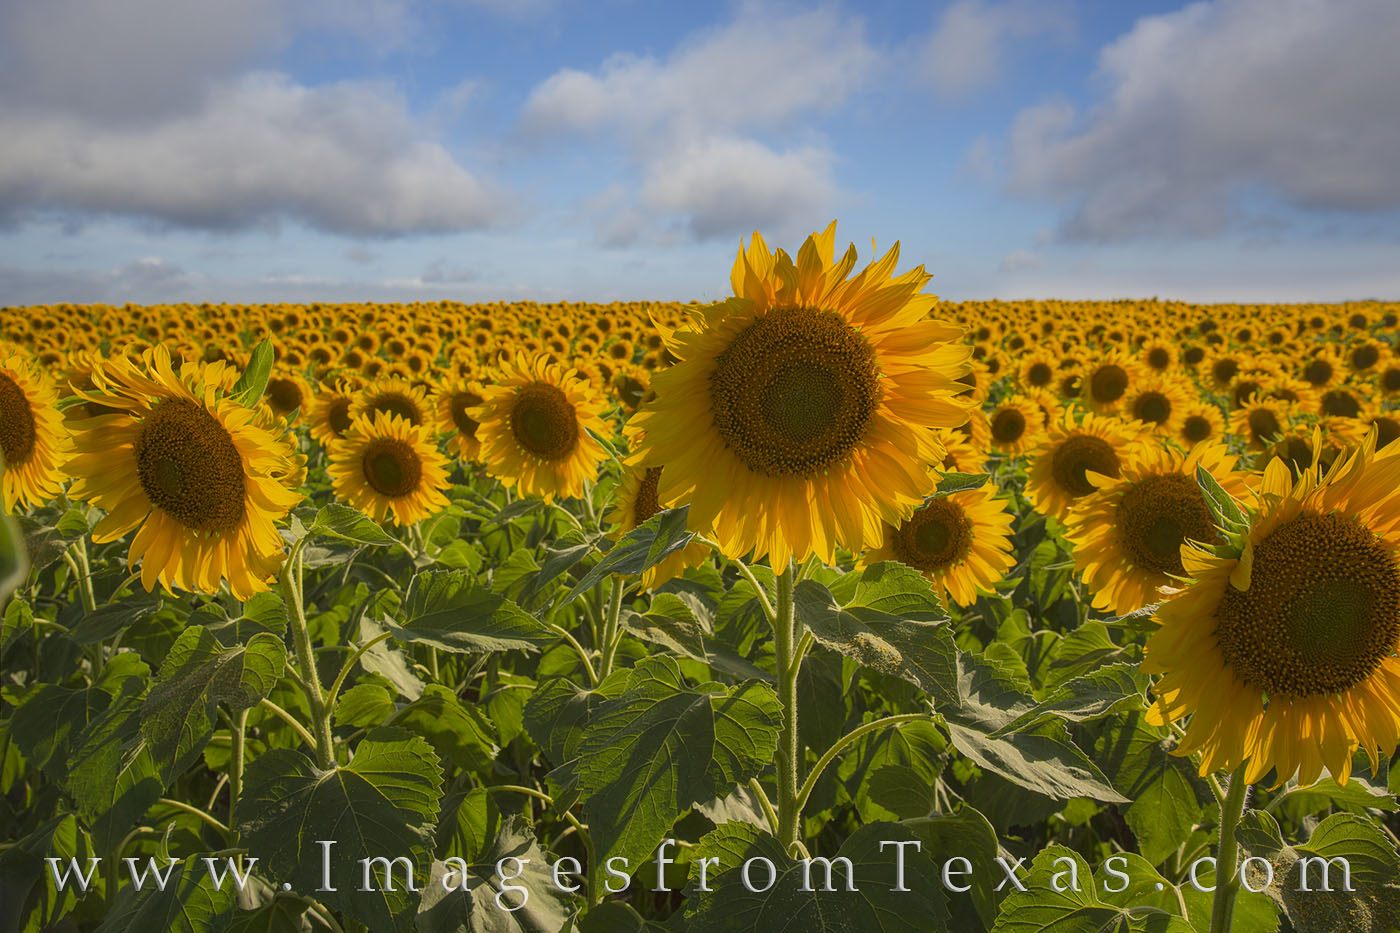 sunflower, sunflowers, texas sunflowers, texas wildflowers, texas landscapes, sunflower fields, texas images, wildflowers, travels, texas travels, photo